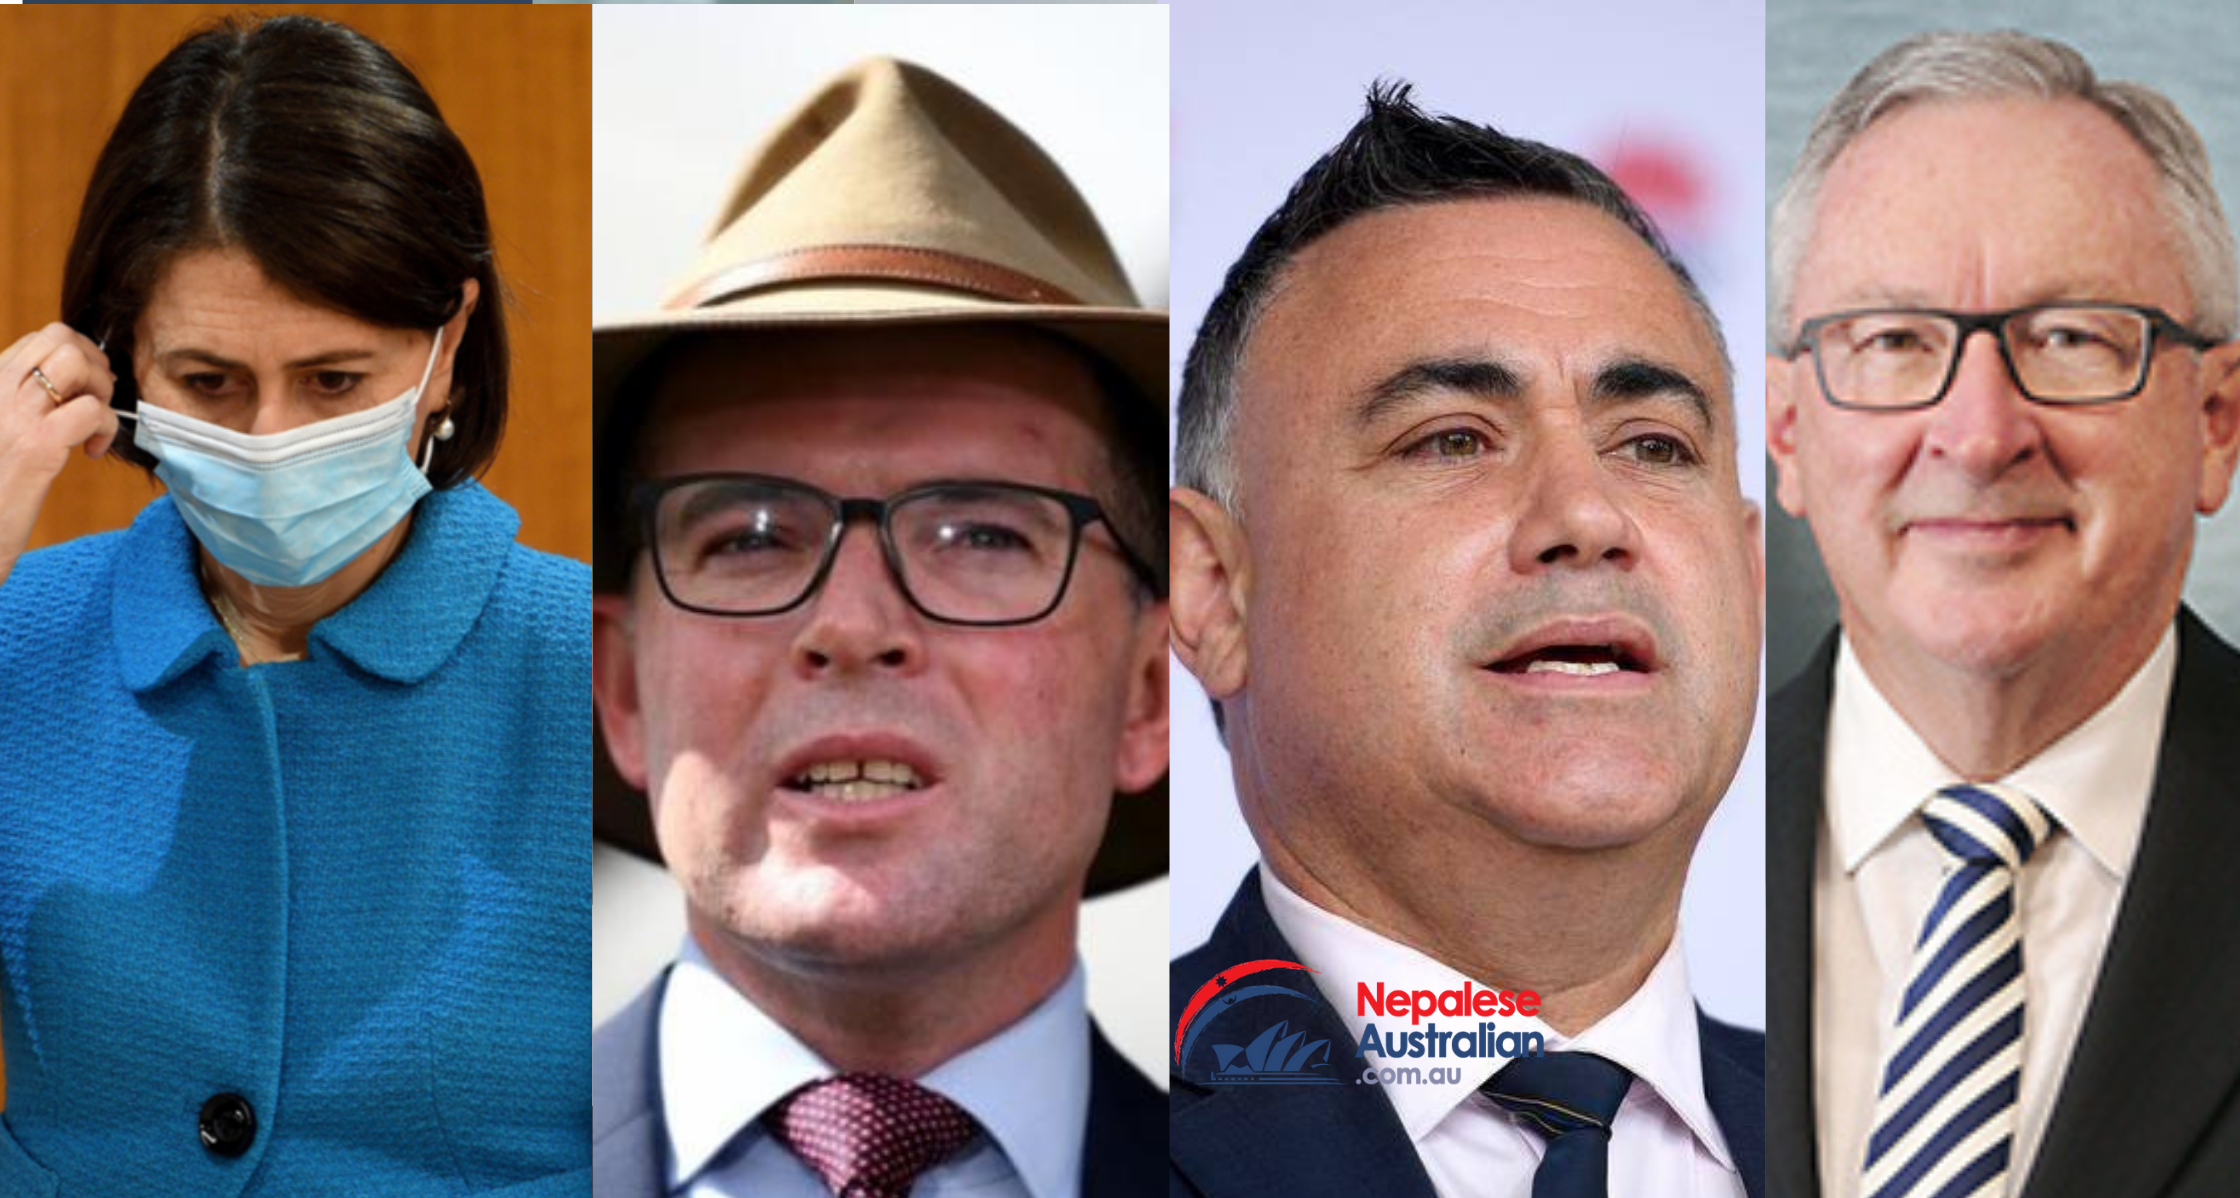 NSW deputy premier John Barilaro amongst those in isolation after MP's positive COVID result